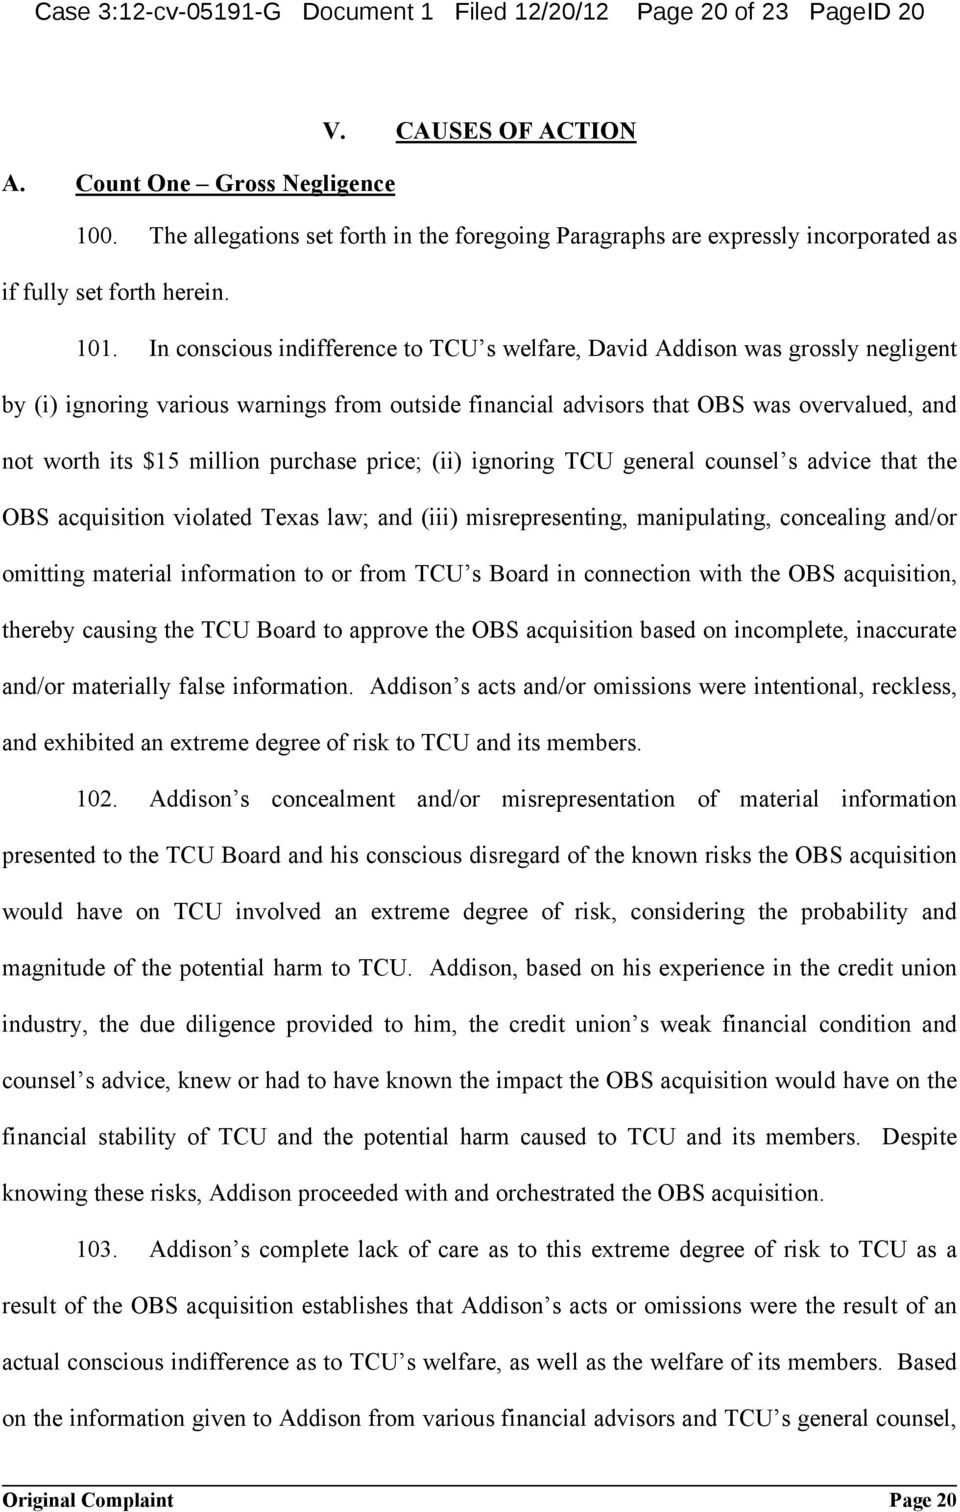 In conscious indifference to TCU s welfare, David Addison was grossly negligent by (i) ignoring various warnings from outside financial advisors that OBS was overvalued, and not worth its $15 million